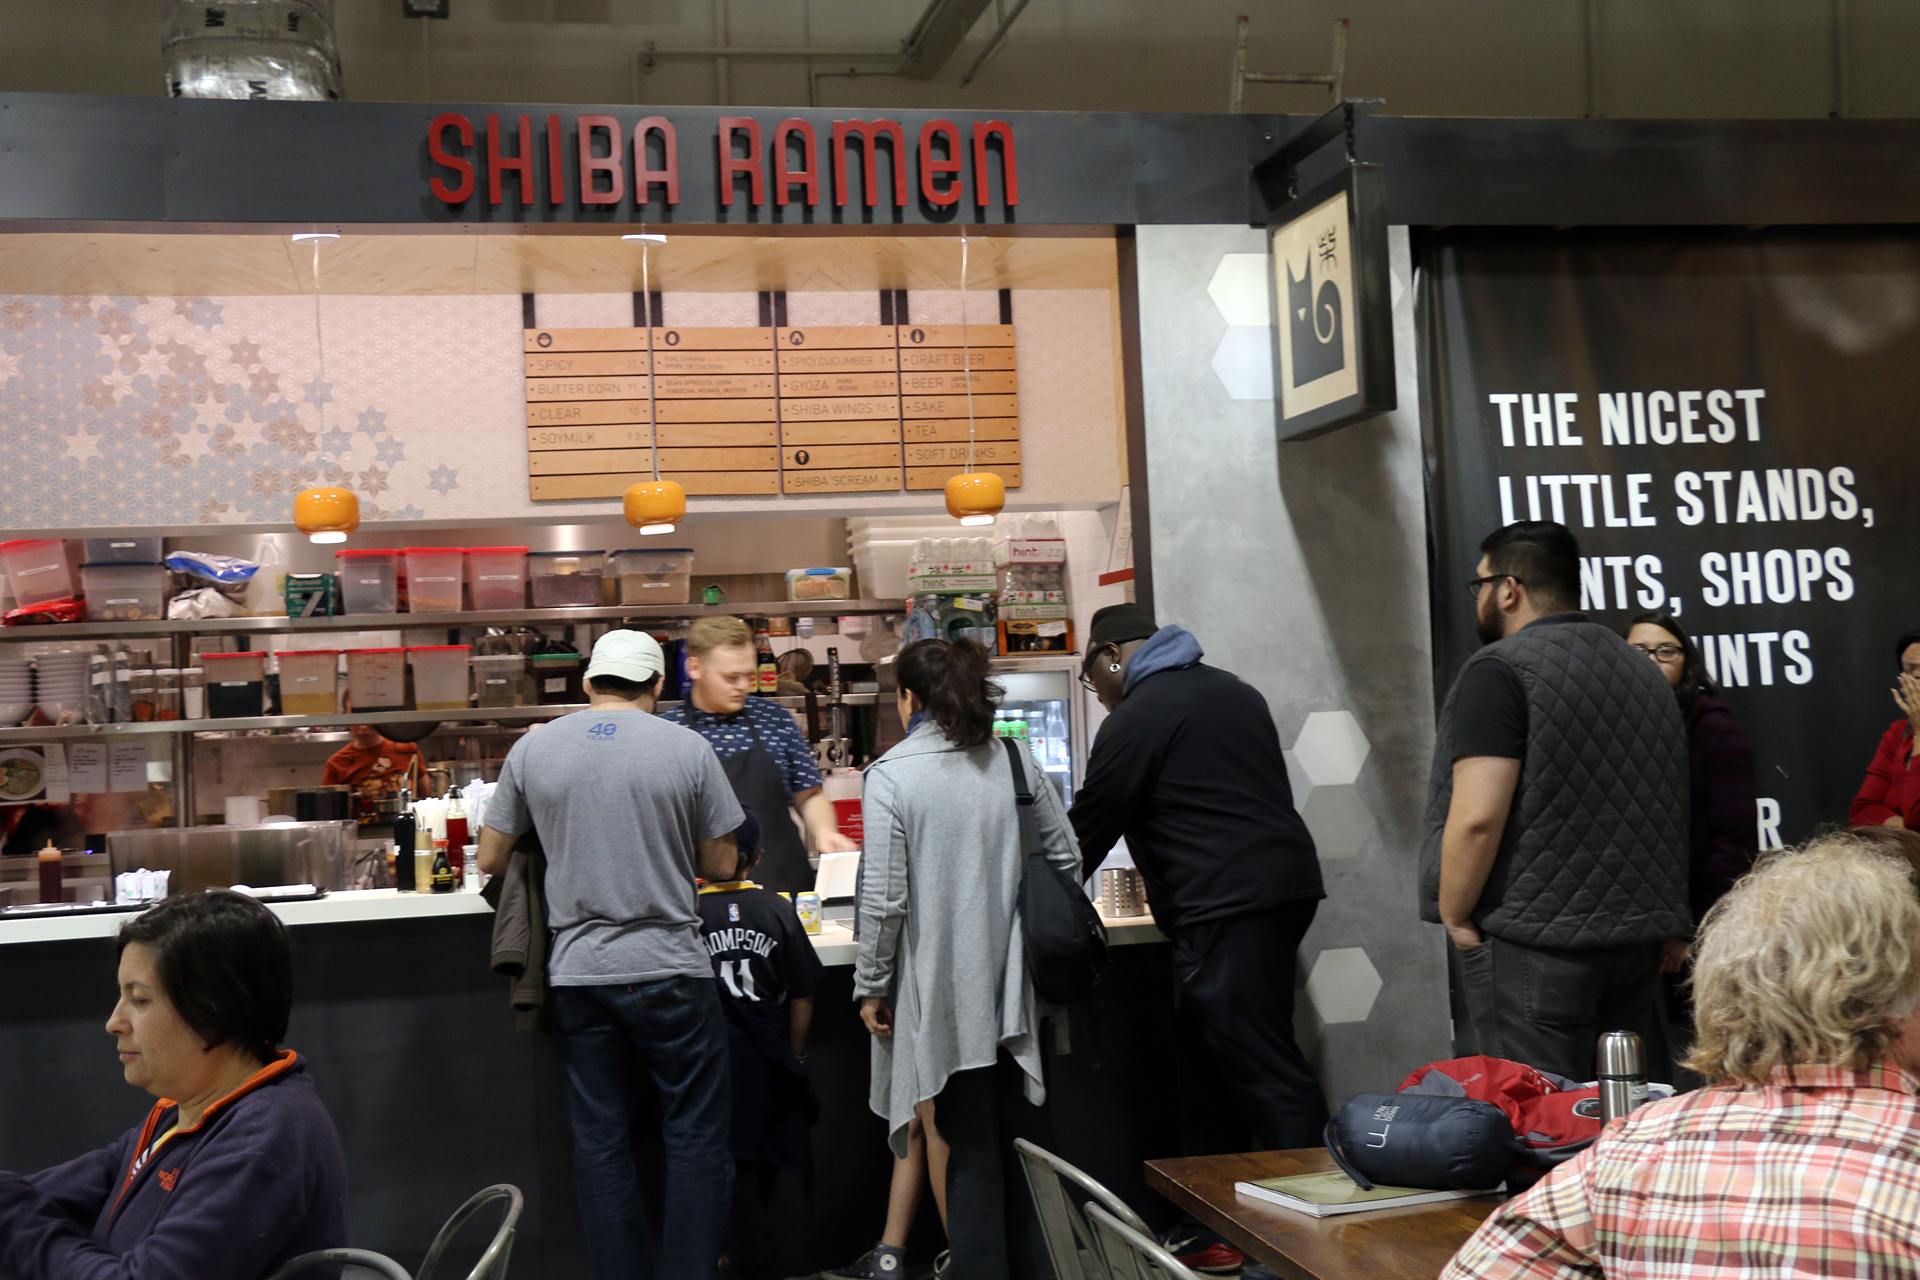 The Shiba Ramen kiosk at Emeryville Public Market